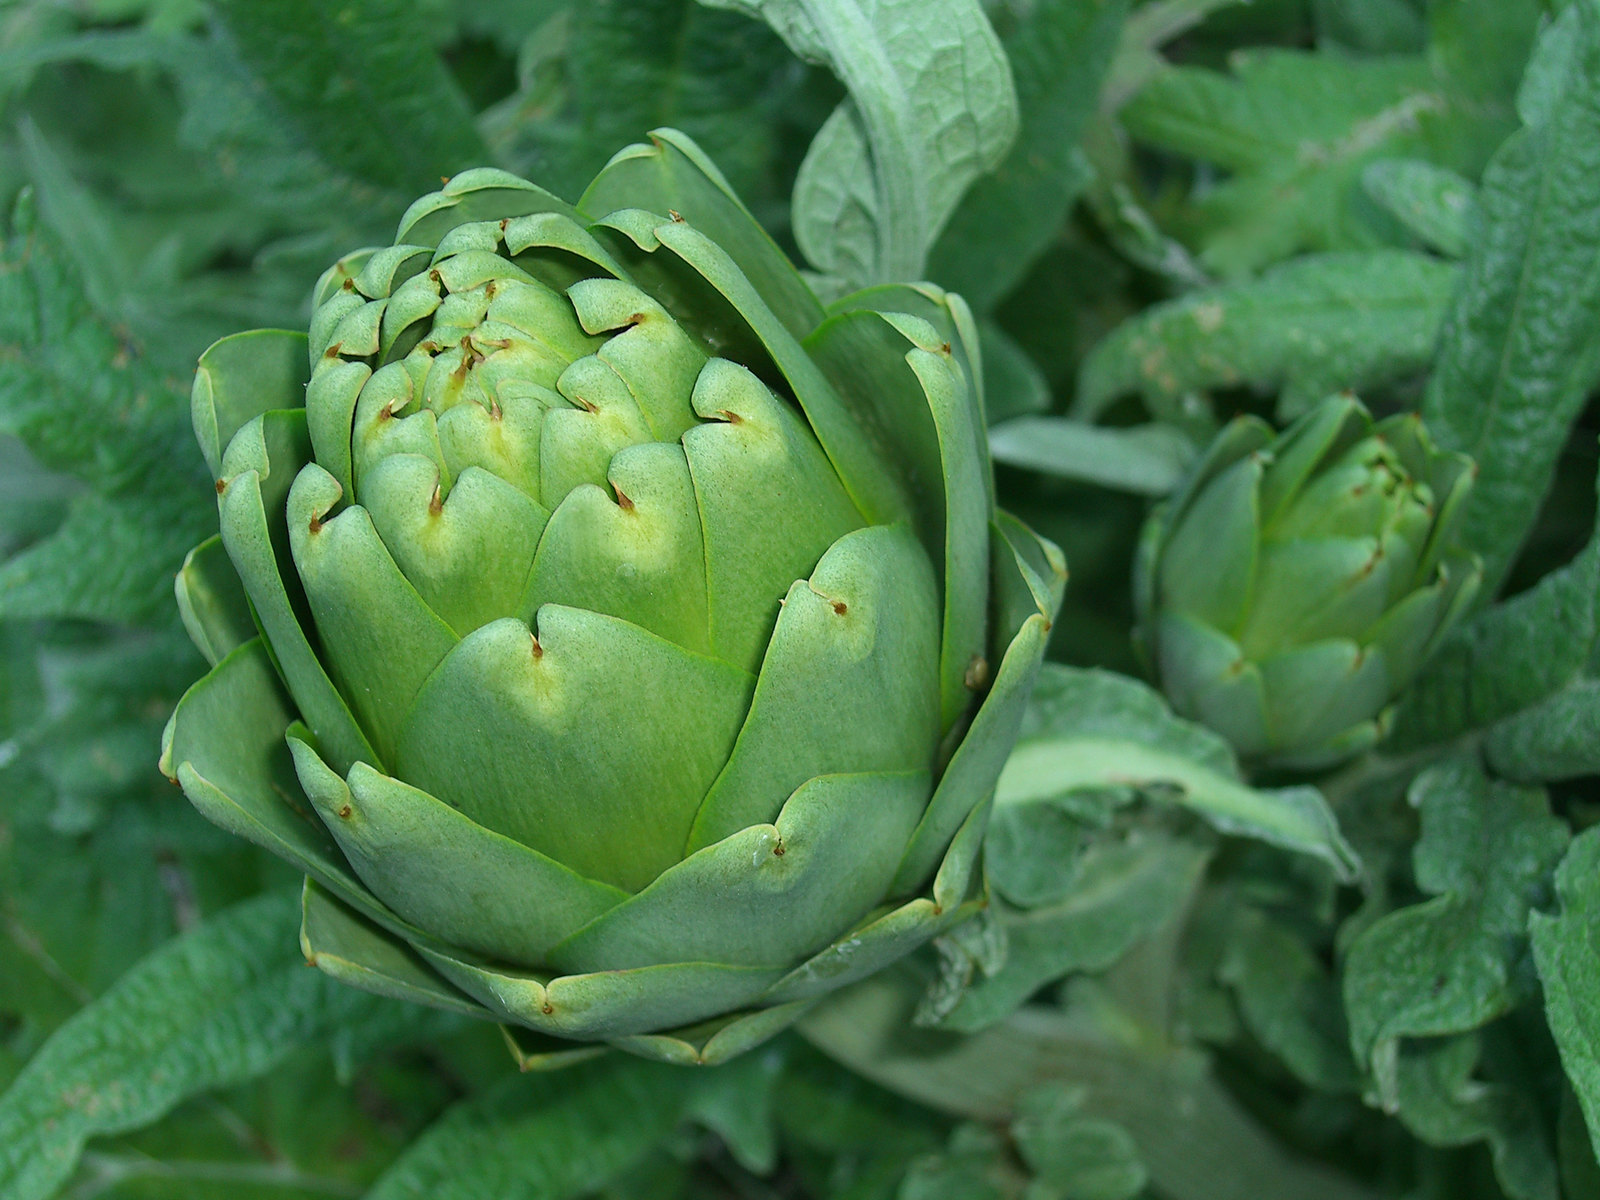 Ornamental or edible, artichokes have a place in the garden